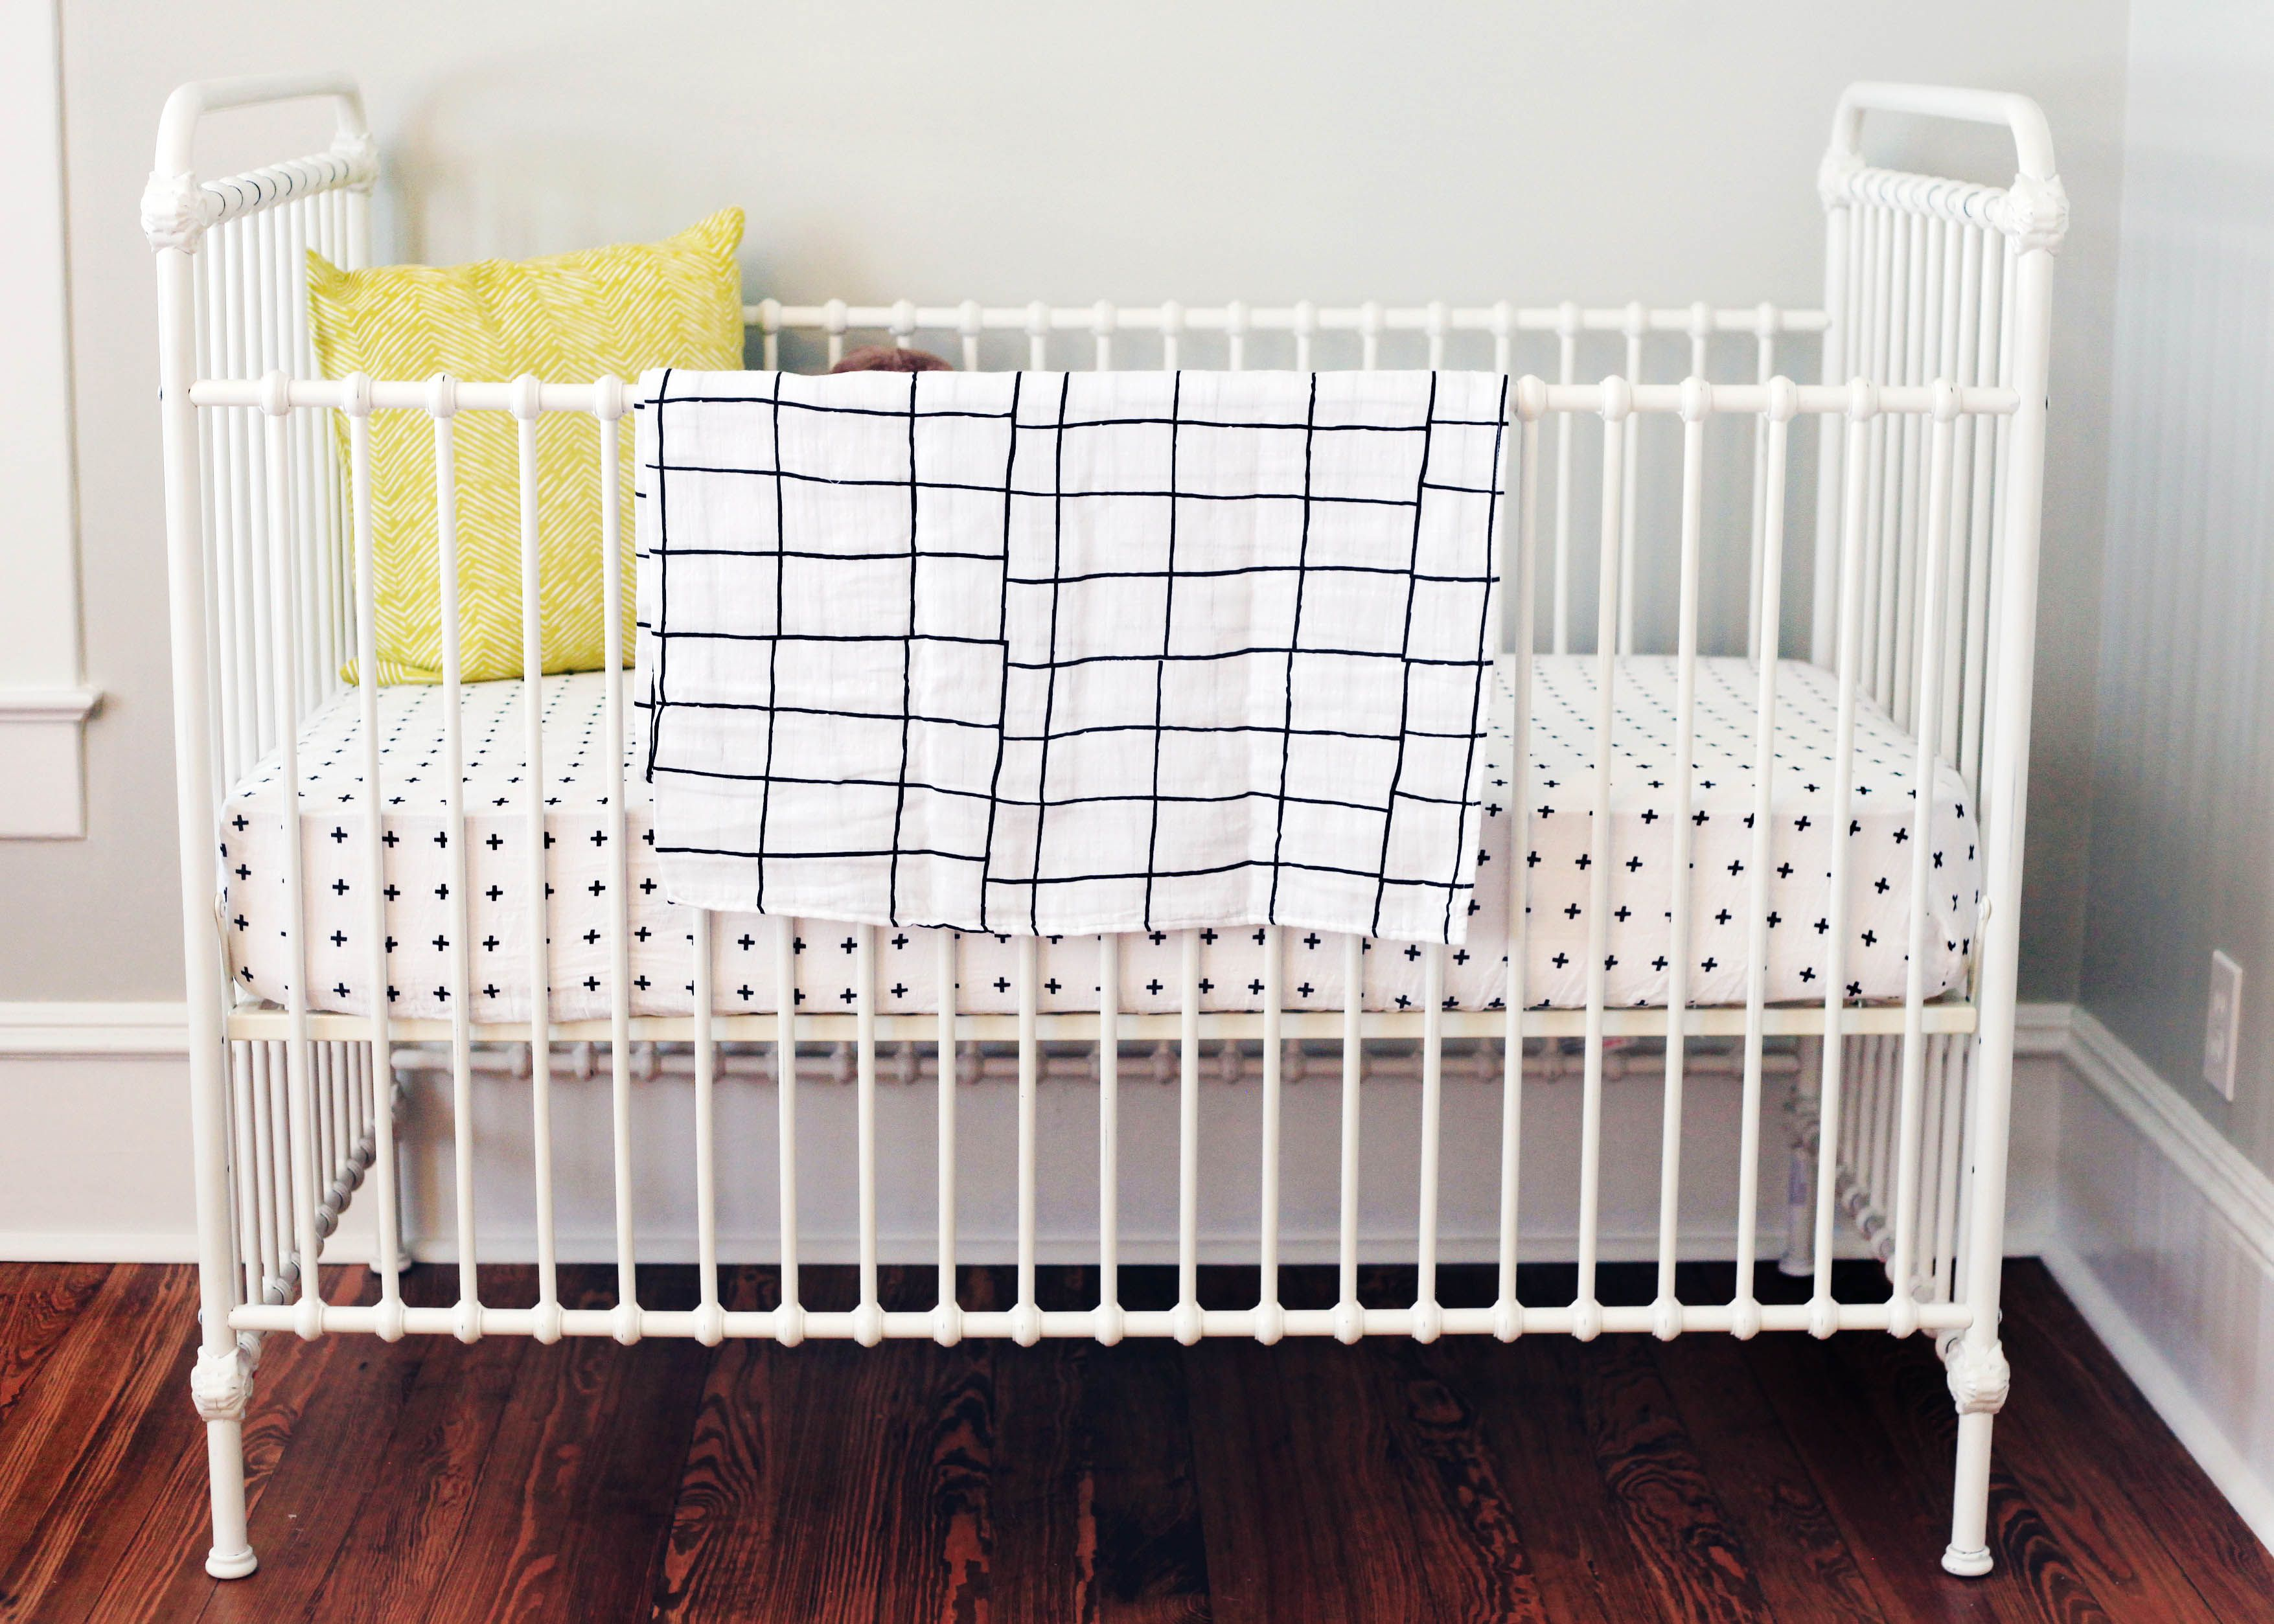 organic crib sheet  swiss cross  crosses products and babies - a chic modern crib outfitted with modern burlap's organic muslin crib sheetand grid swaddle blanket